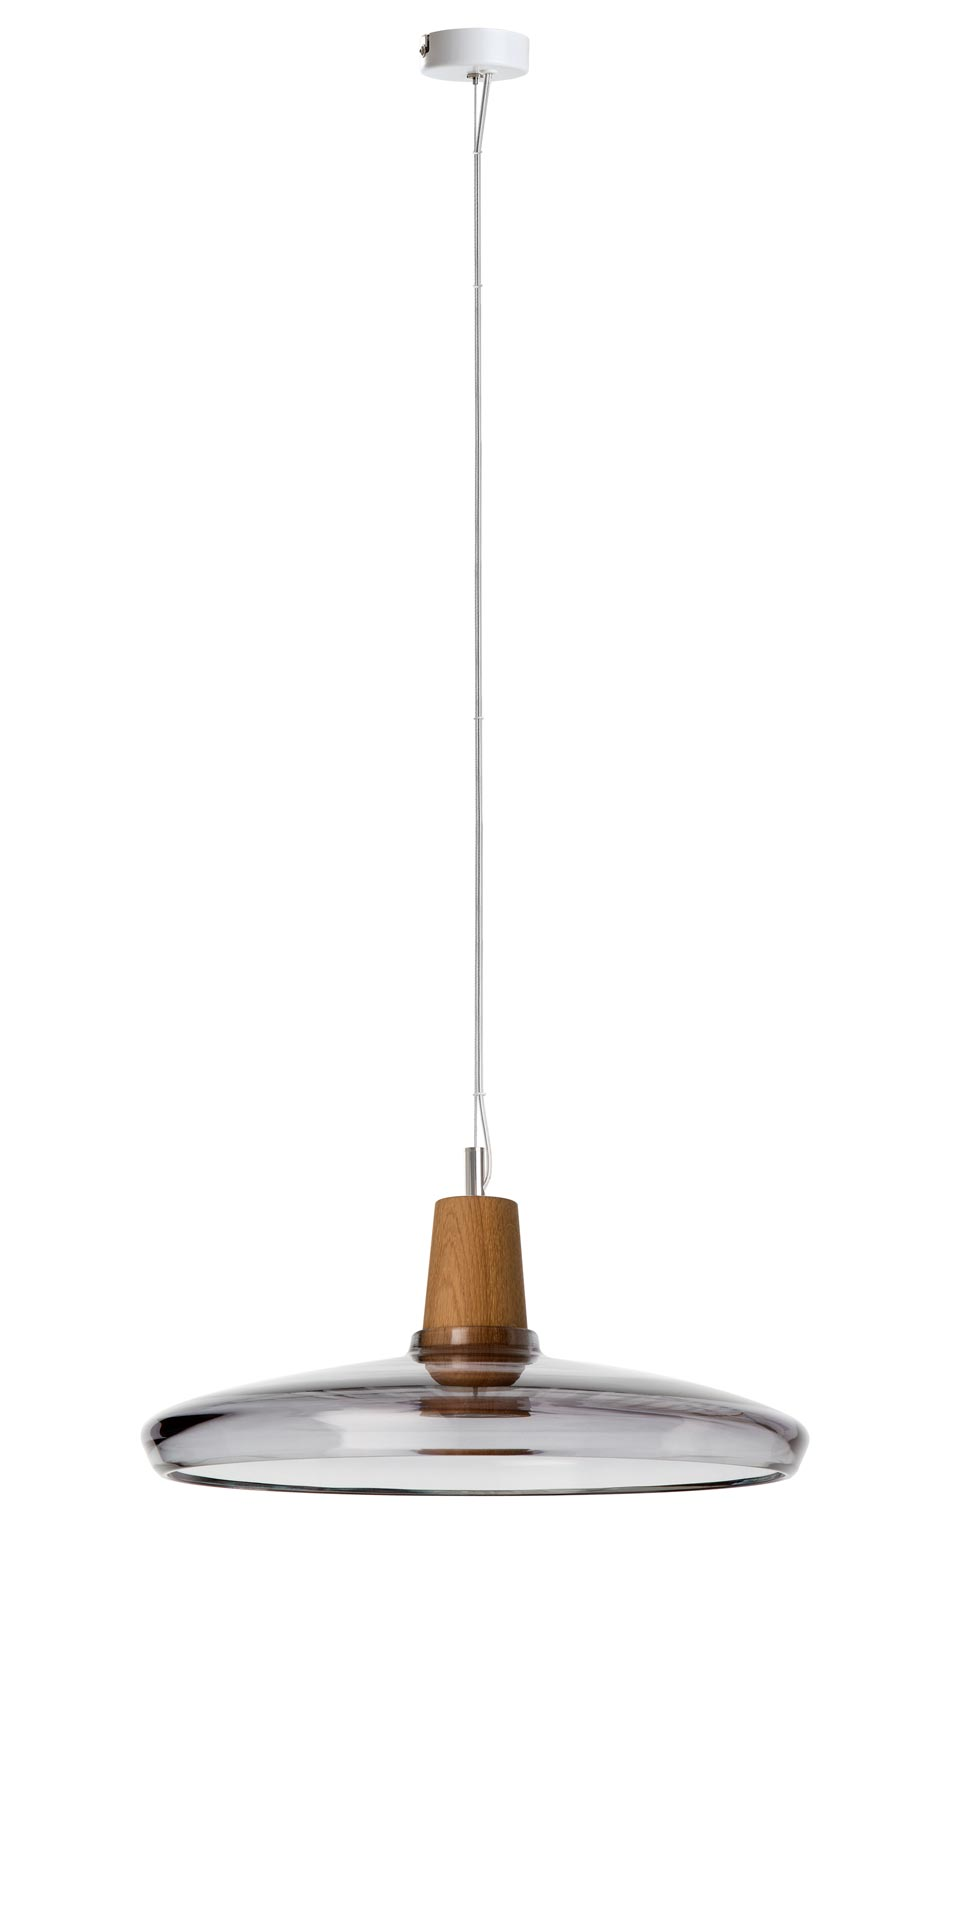 Industrial Pendant Lamp Shade Large In Anthracite Glass Dreizehngrad Made In Germany Ref 15090005